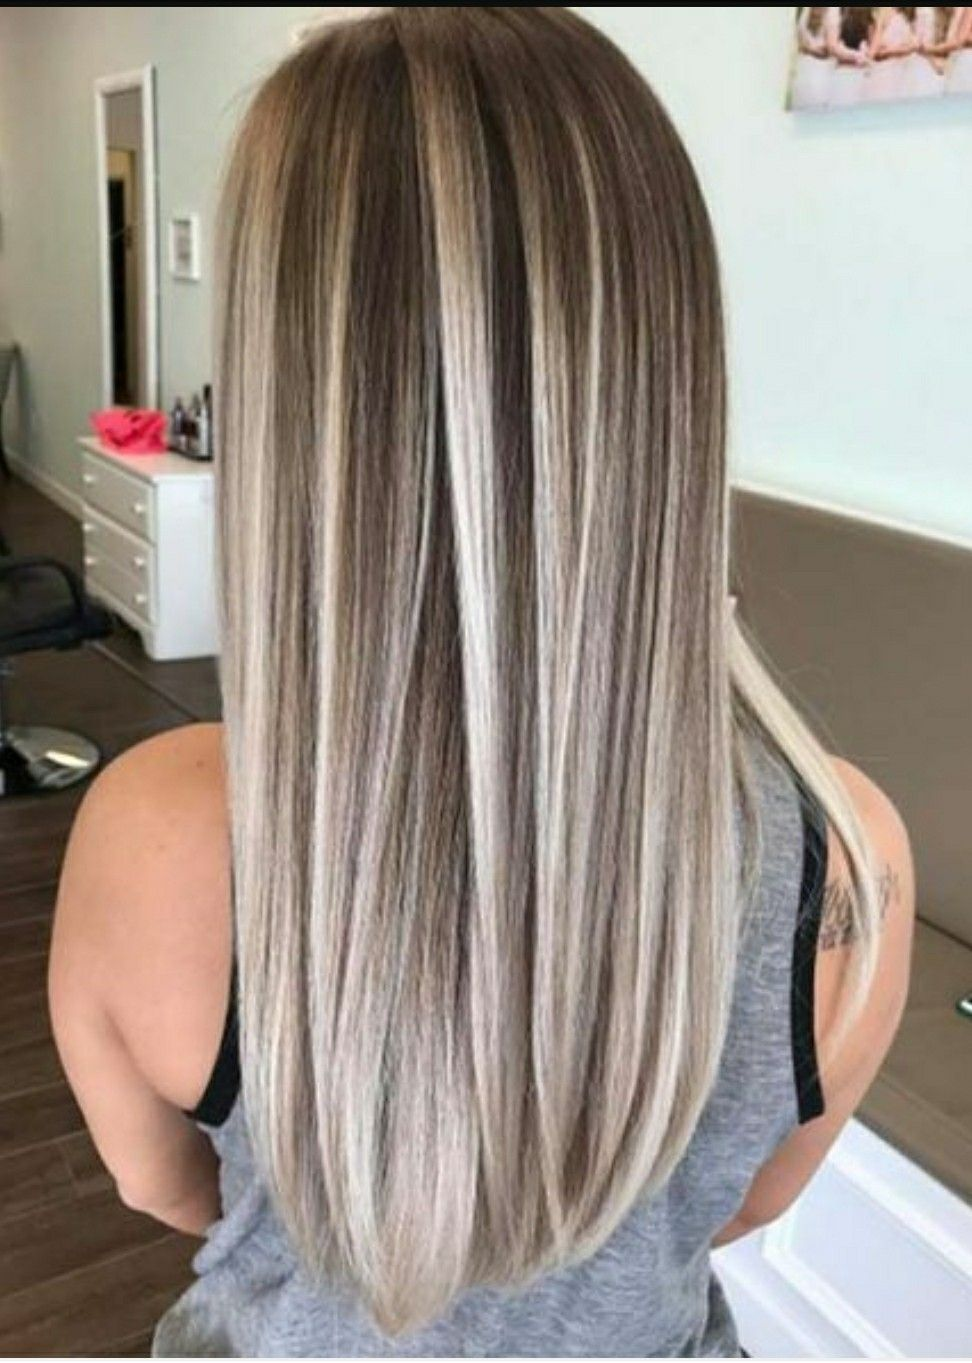 Pin By Melanie Hannah On Pretty Hair Color Pinterest Hair